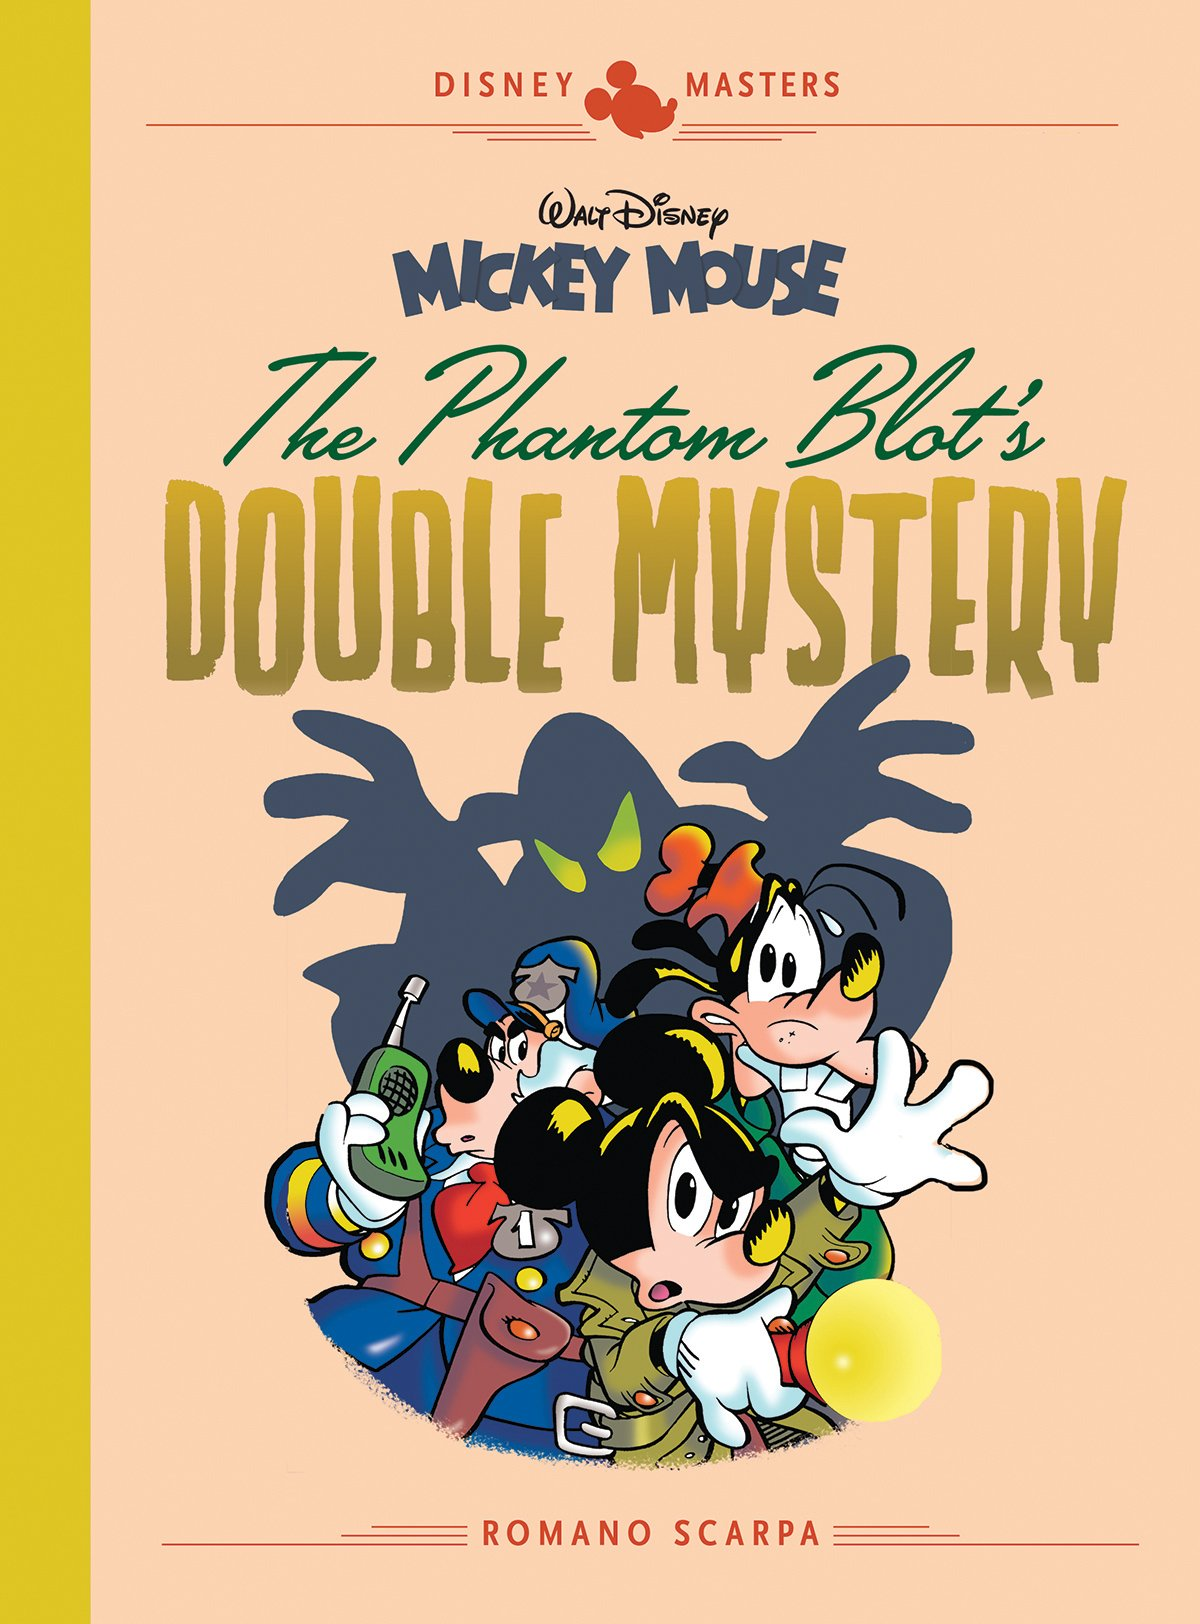 afd8c0269 5: Romano Scarpa: Walt Disney's Mickey Mouse: The Phantom Blot's Double  Mystery (The Disney Masters Collection) Hardcover – October 9, 2018